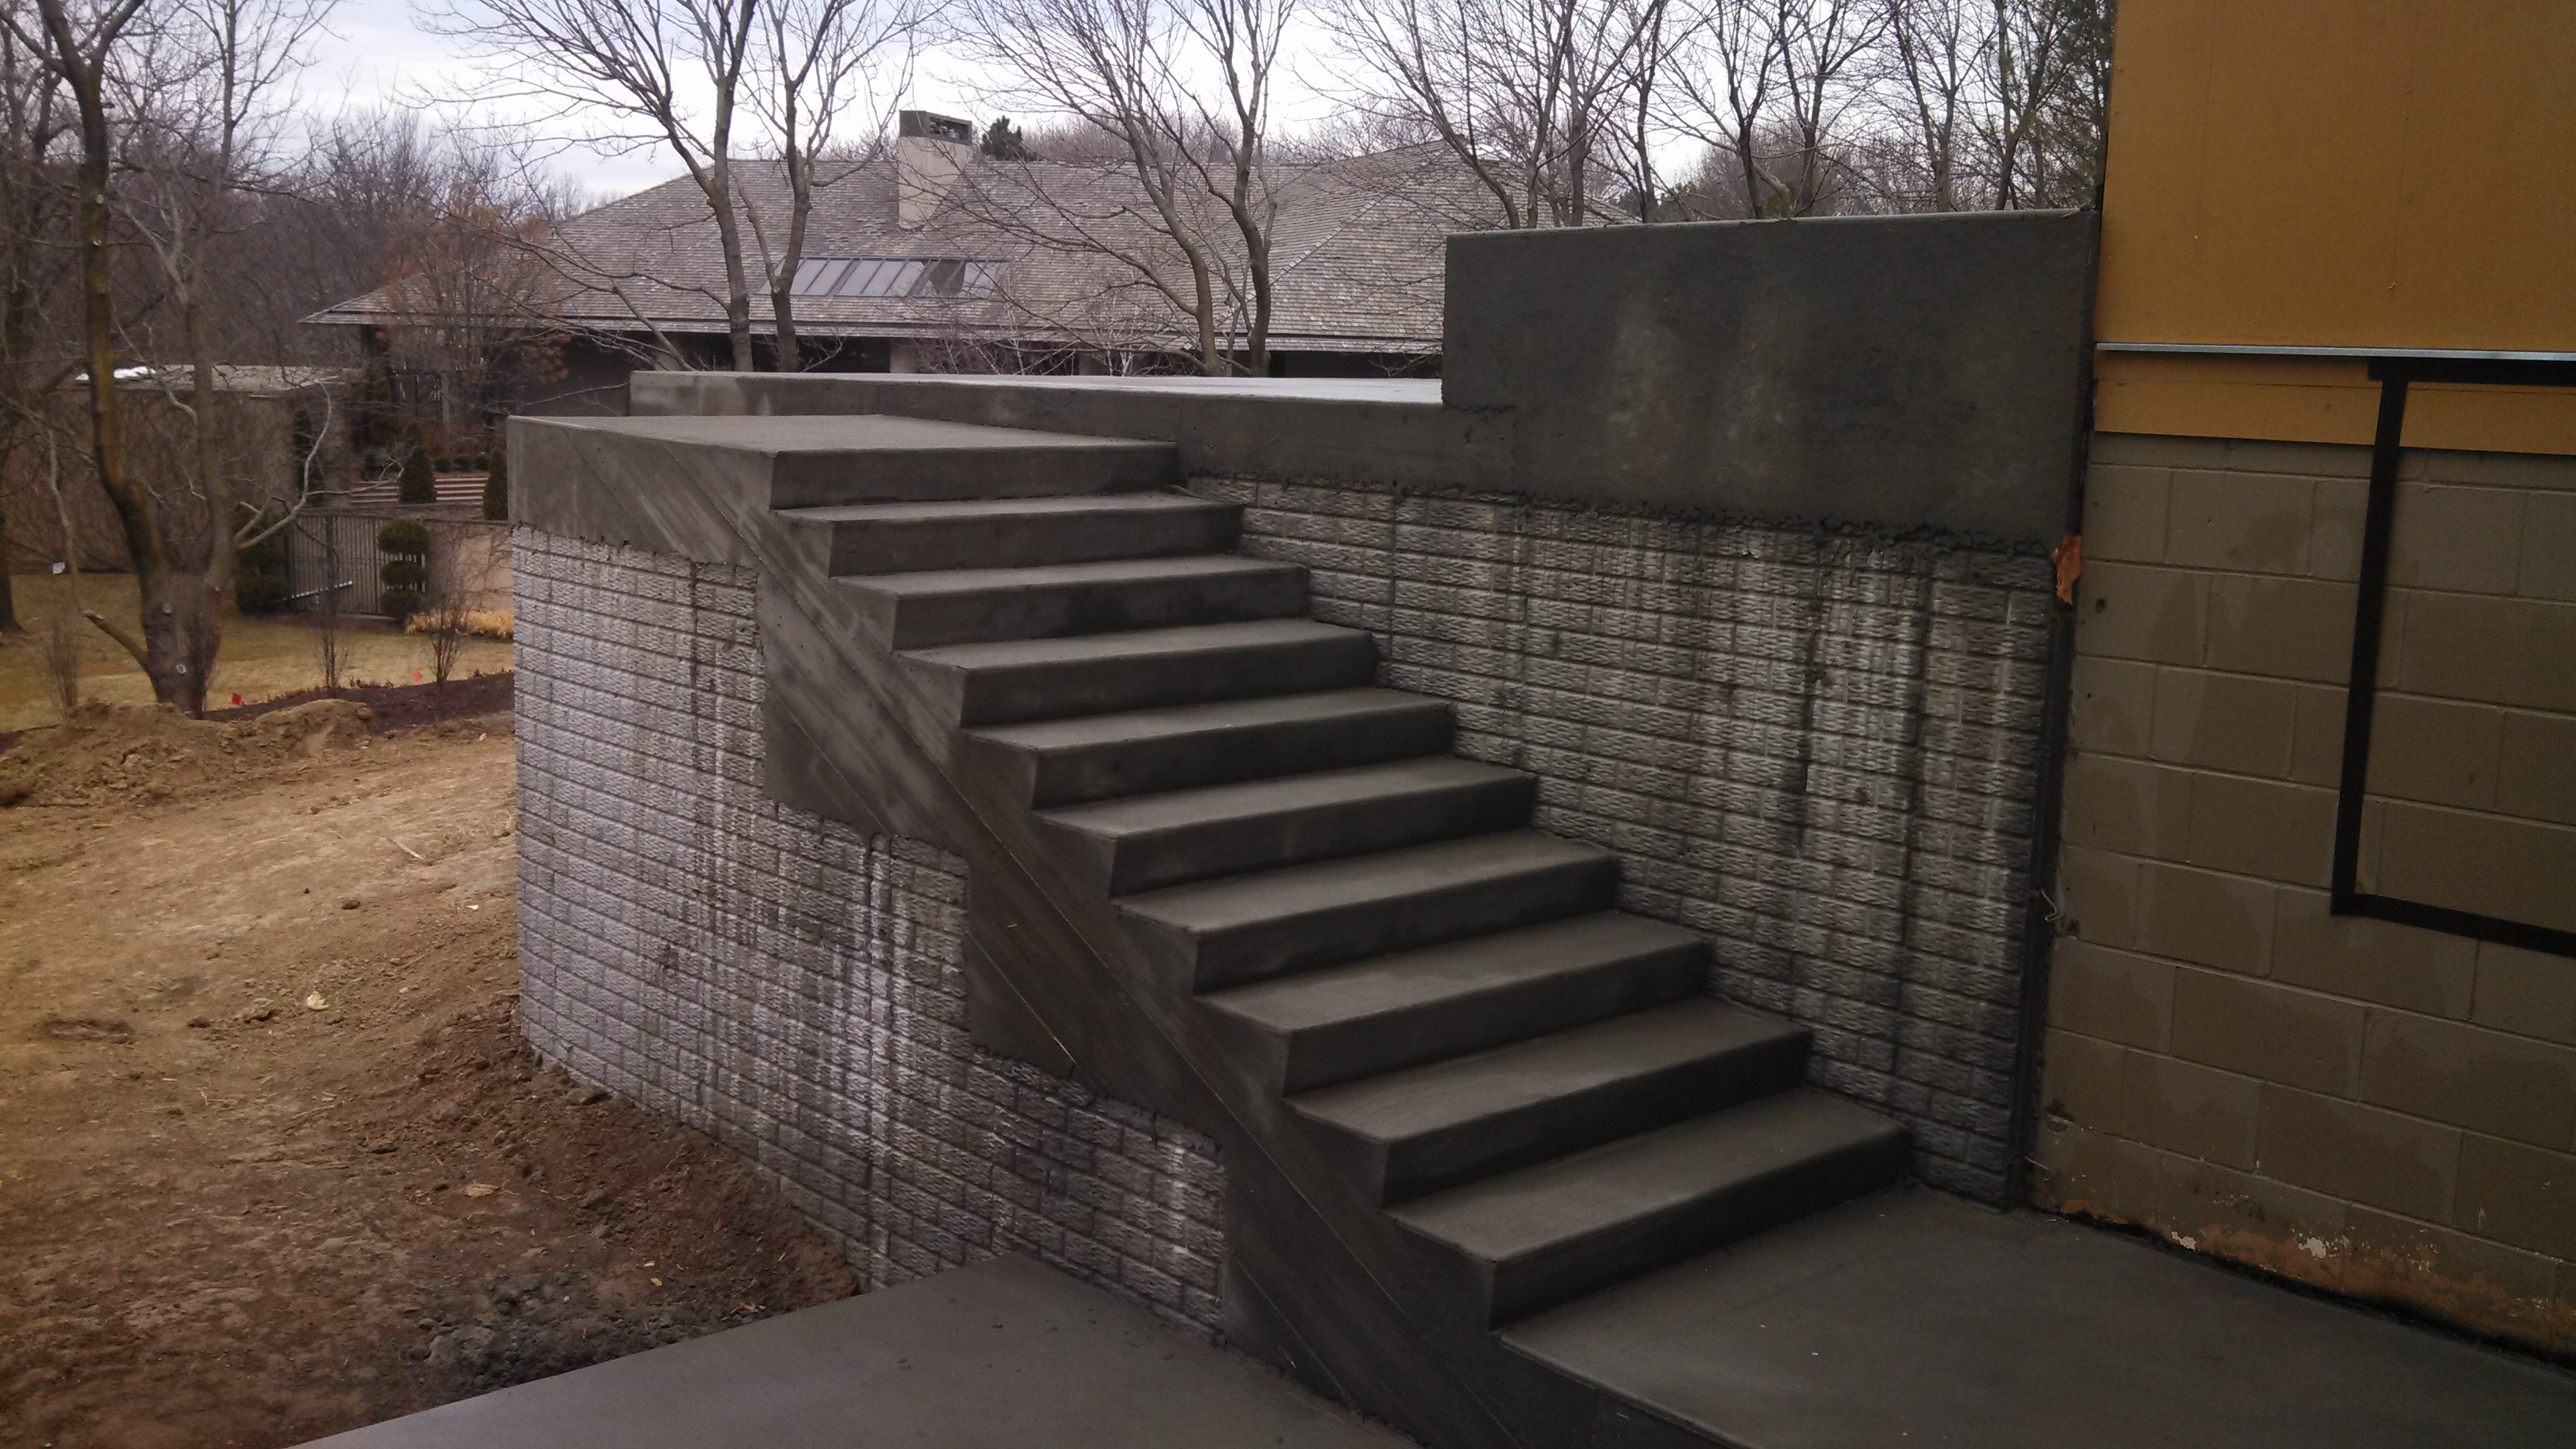 Structural Concrete Steps and Patio